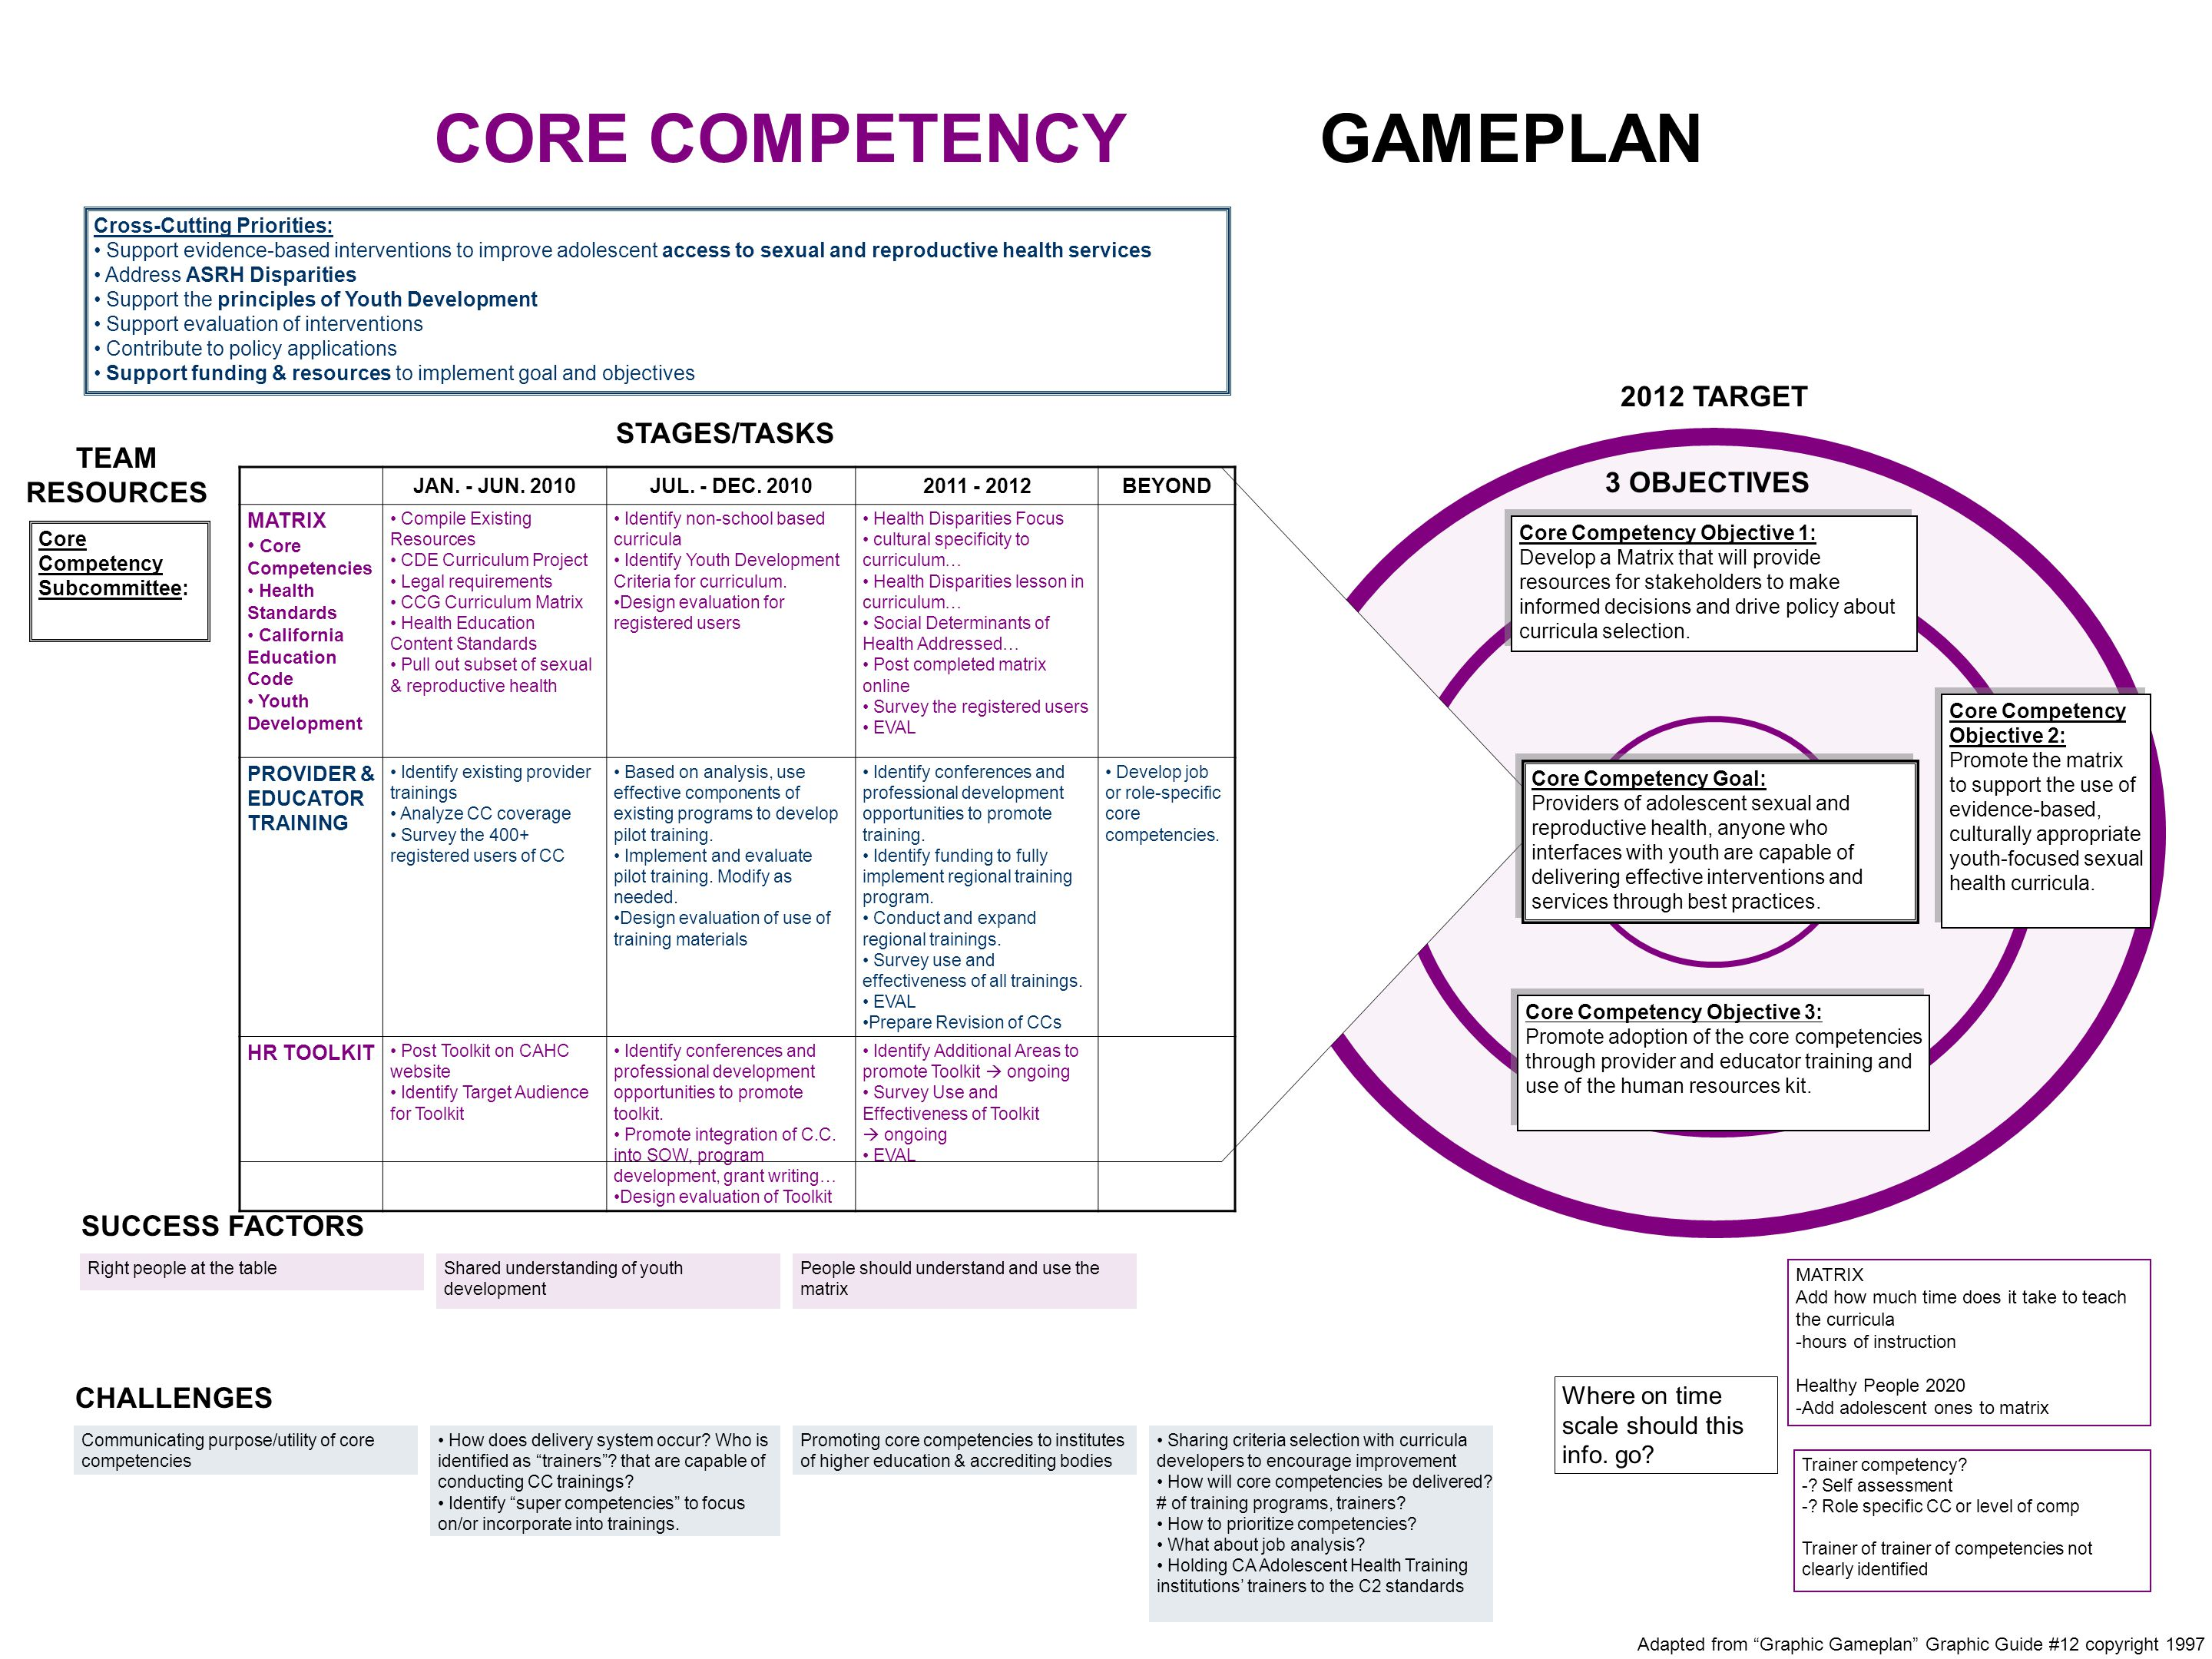 2012 TARGET TEAM RESOURCES CHALLENGES STAGES/TASKS CORE COMPETENCY GAMEPLAN Adapted from Graphic Gameplan Graphic Guide #12 copyright 1997 Communicating purpose/utility of core competencies Sharing criteria selection with curricula developers to encourage improvement How will core competencies be delivered.